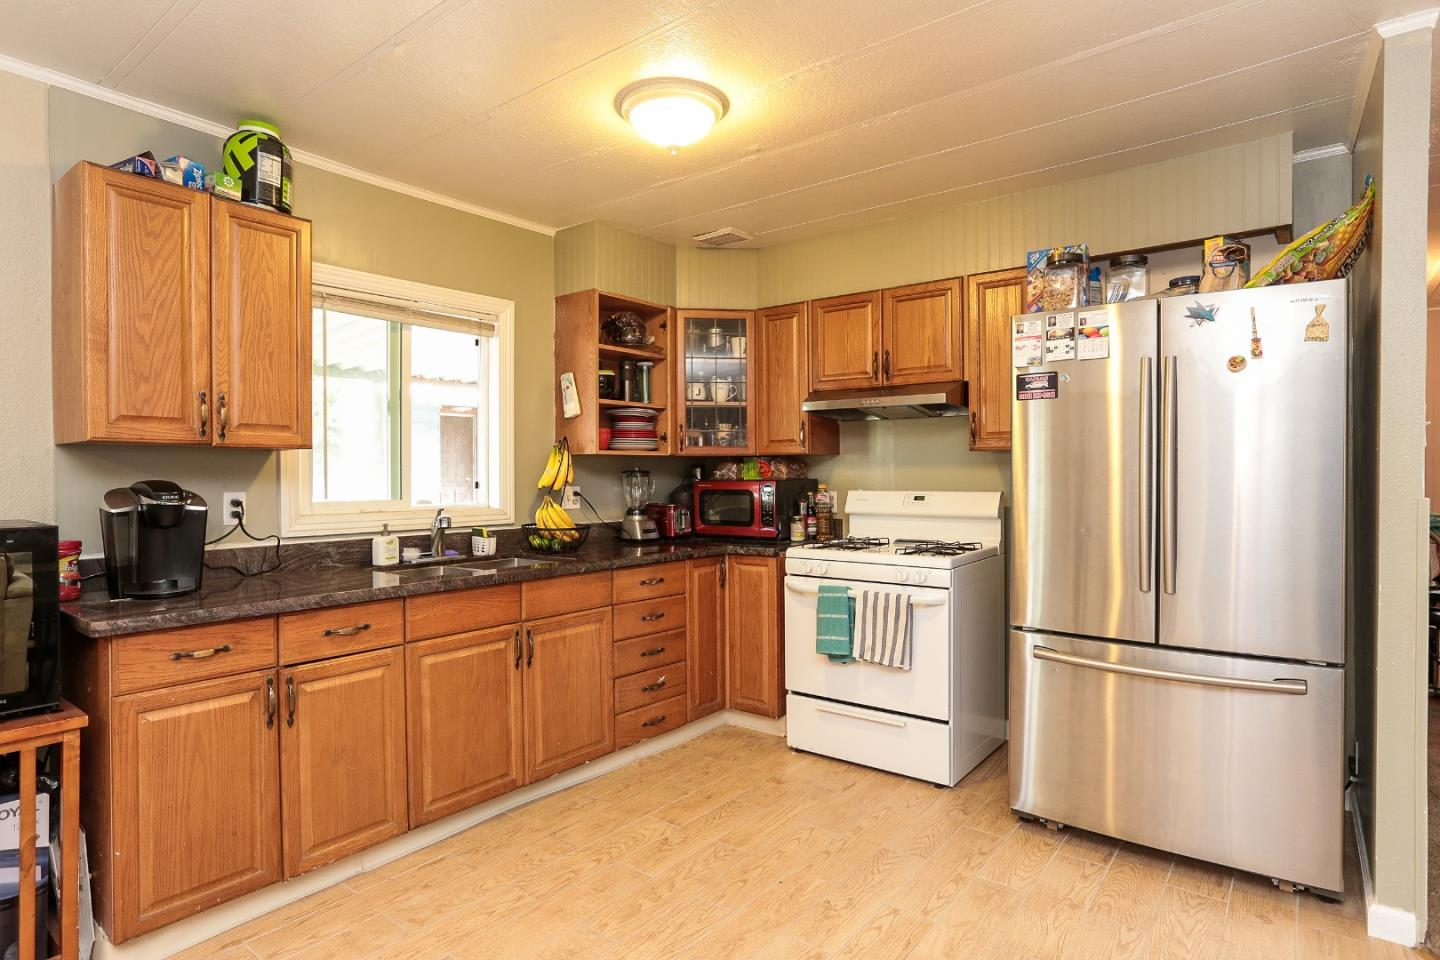 Additional photo for property listing at 200 Ford Road 200 Ford Road San Jose, California 95138 Estados Unidos